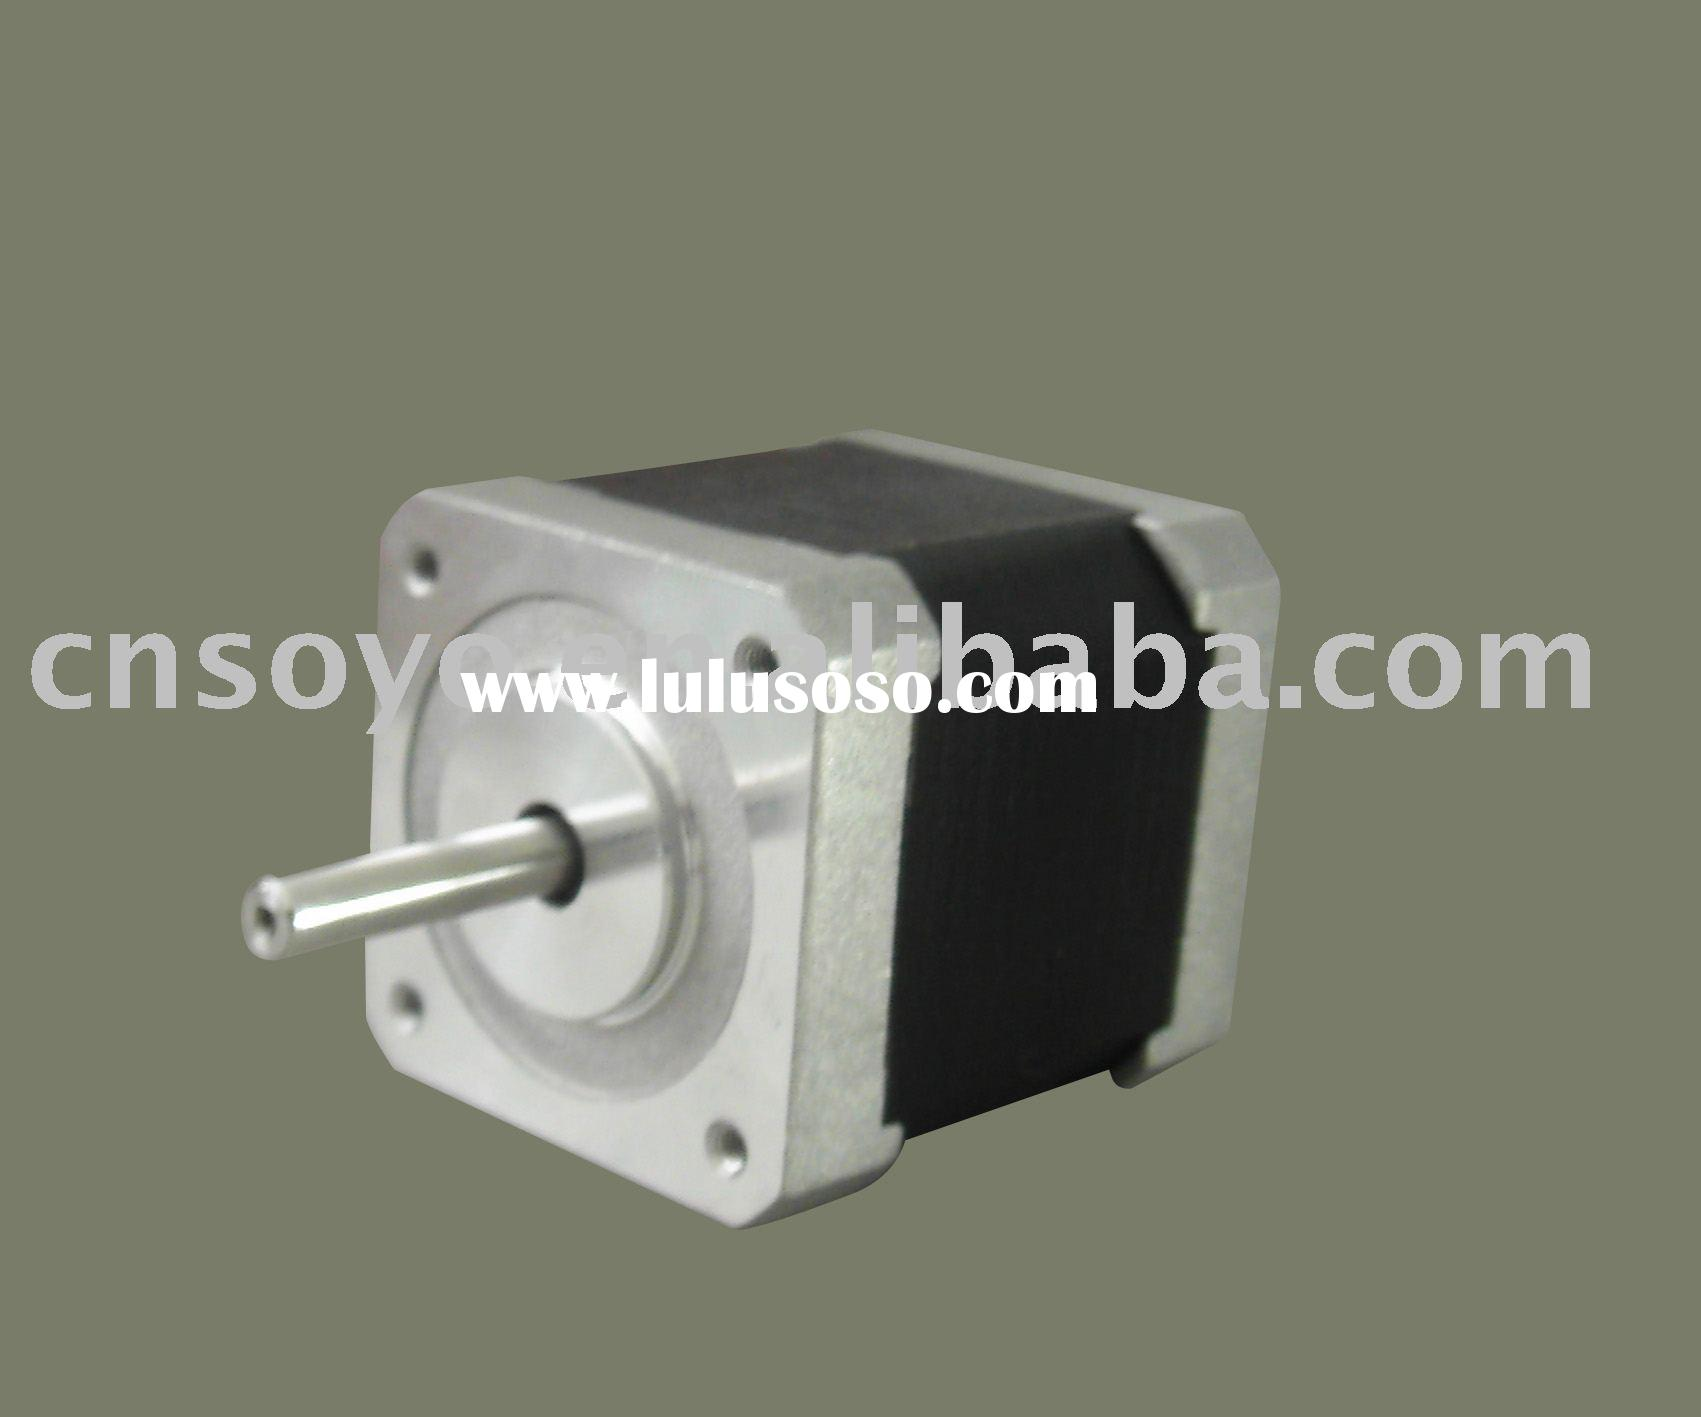 High Torque Hybrid Stepper Motor Sy85sth118 4208a For Sale